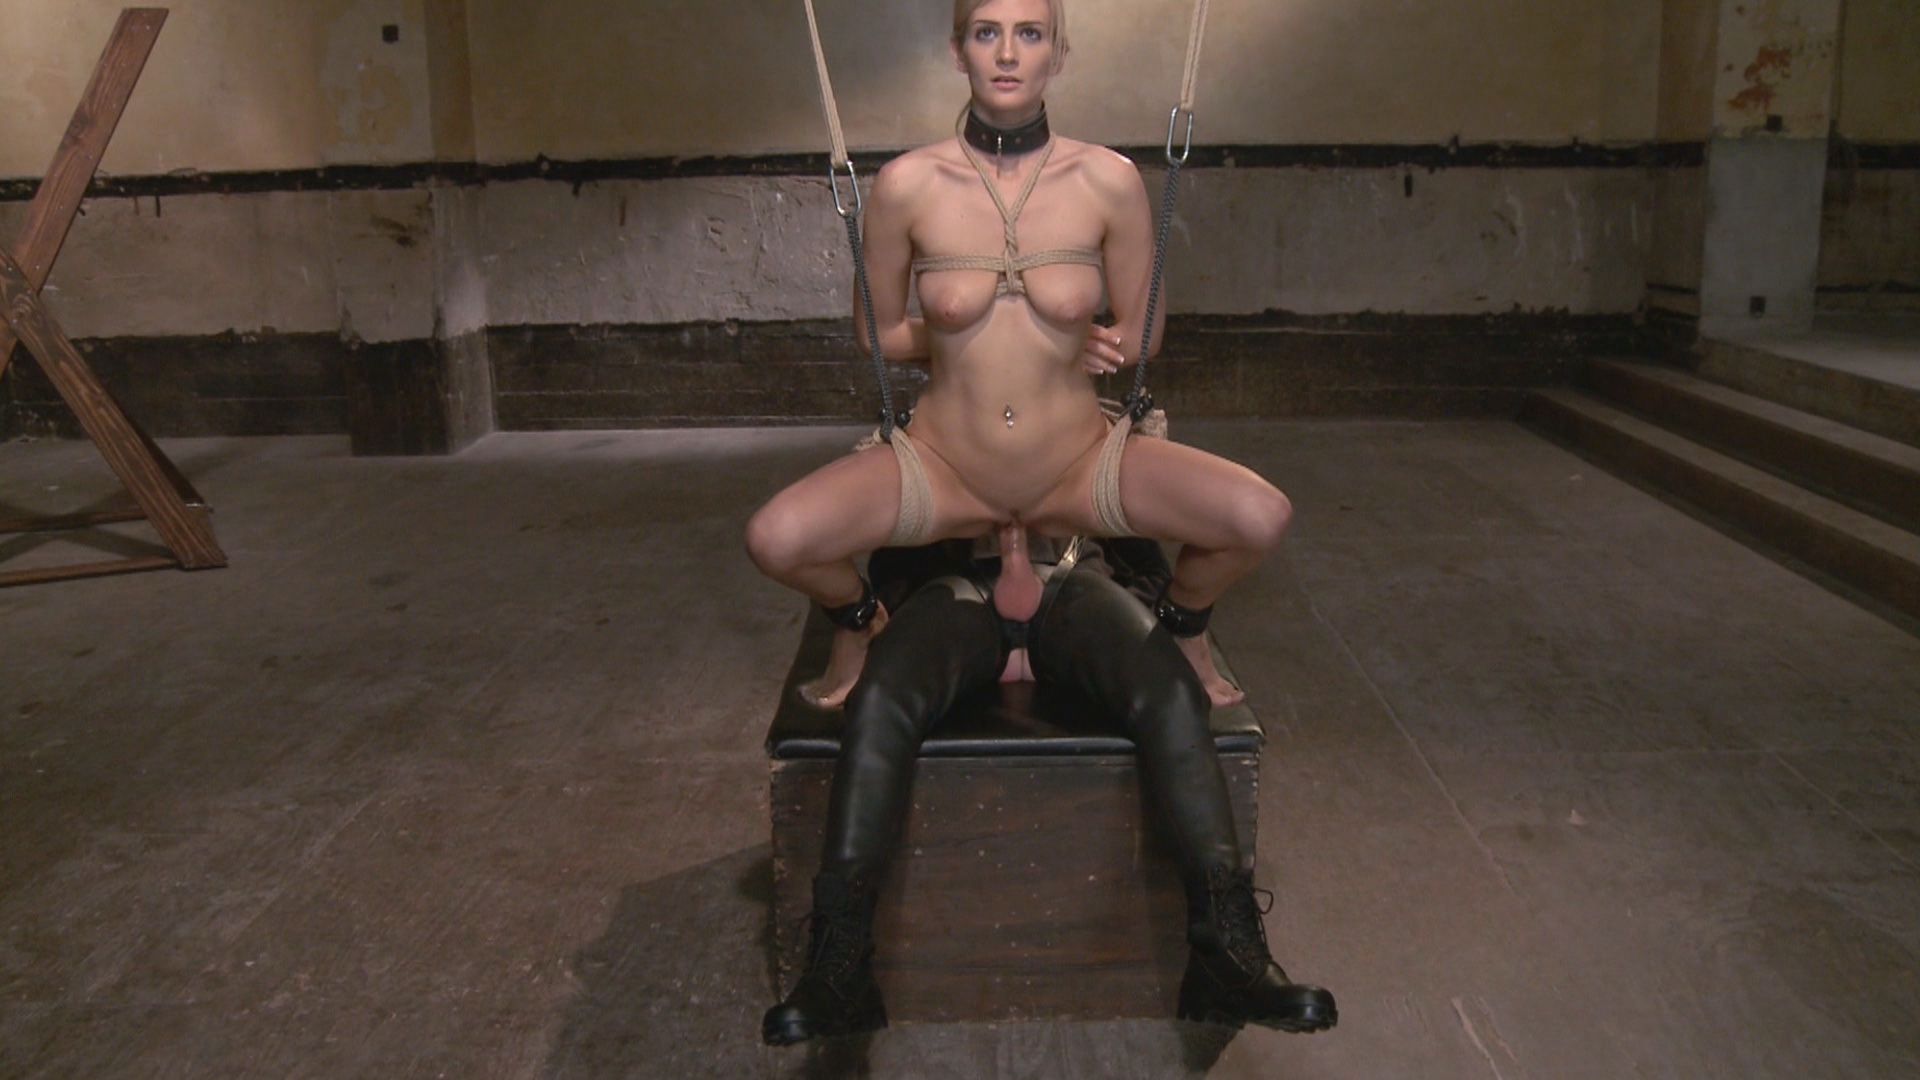 The Training Of O: Amanda Tate, Day Four Xvideos